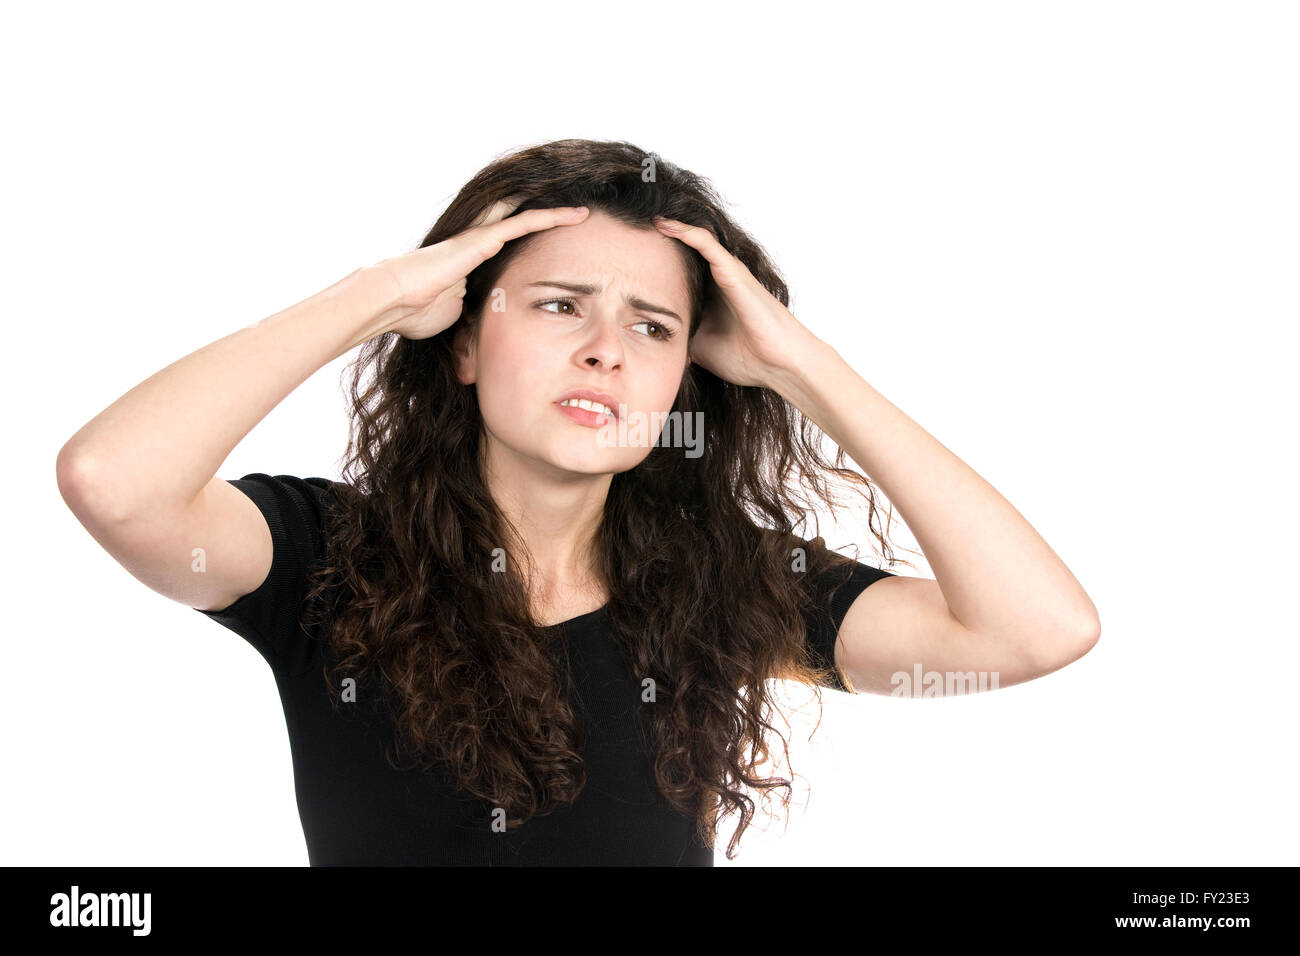 Anxious young businesswoman runs her fingers through her hair as she worries and stresses about her situation. Stock Photo